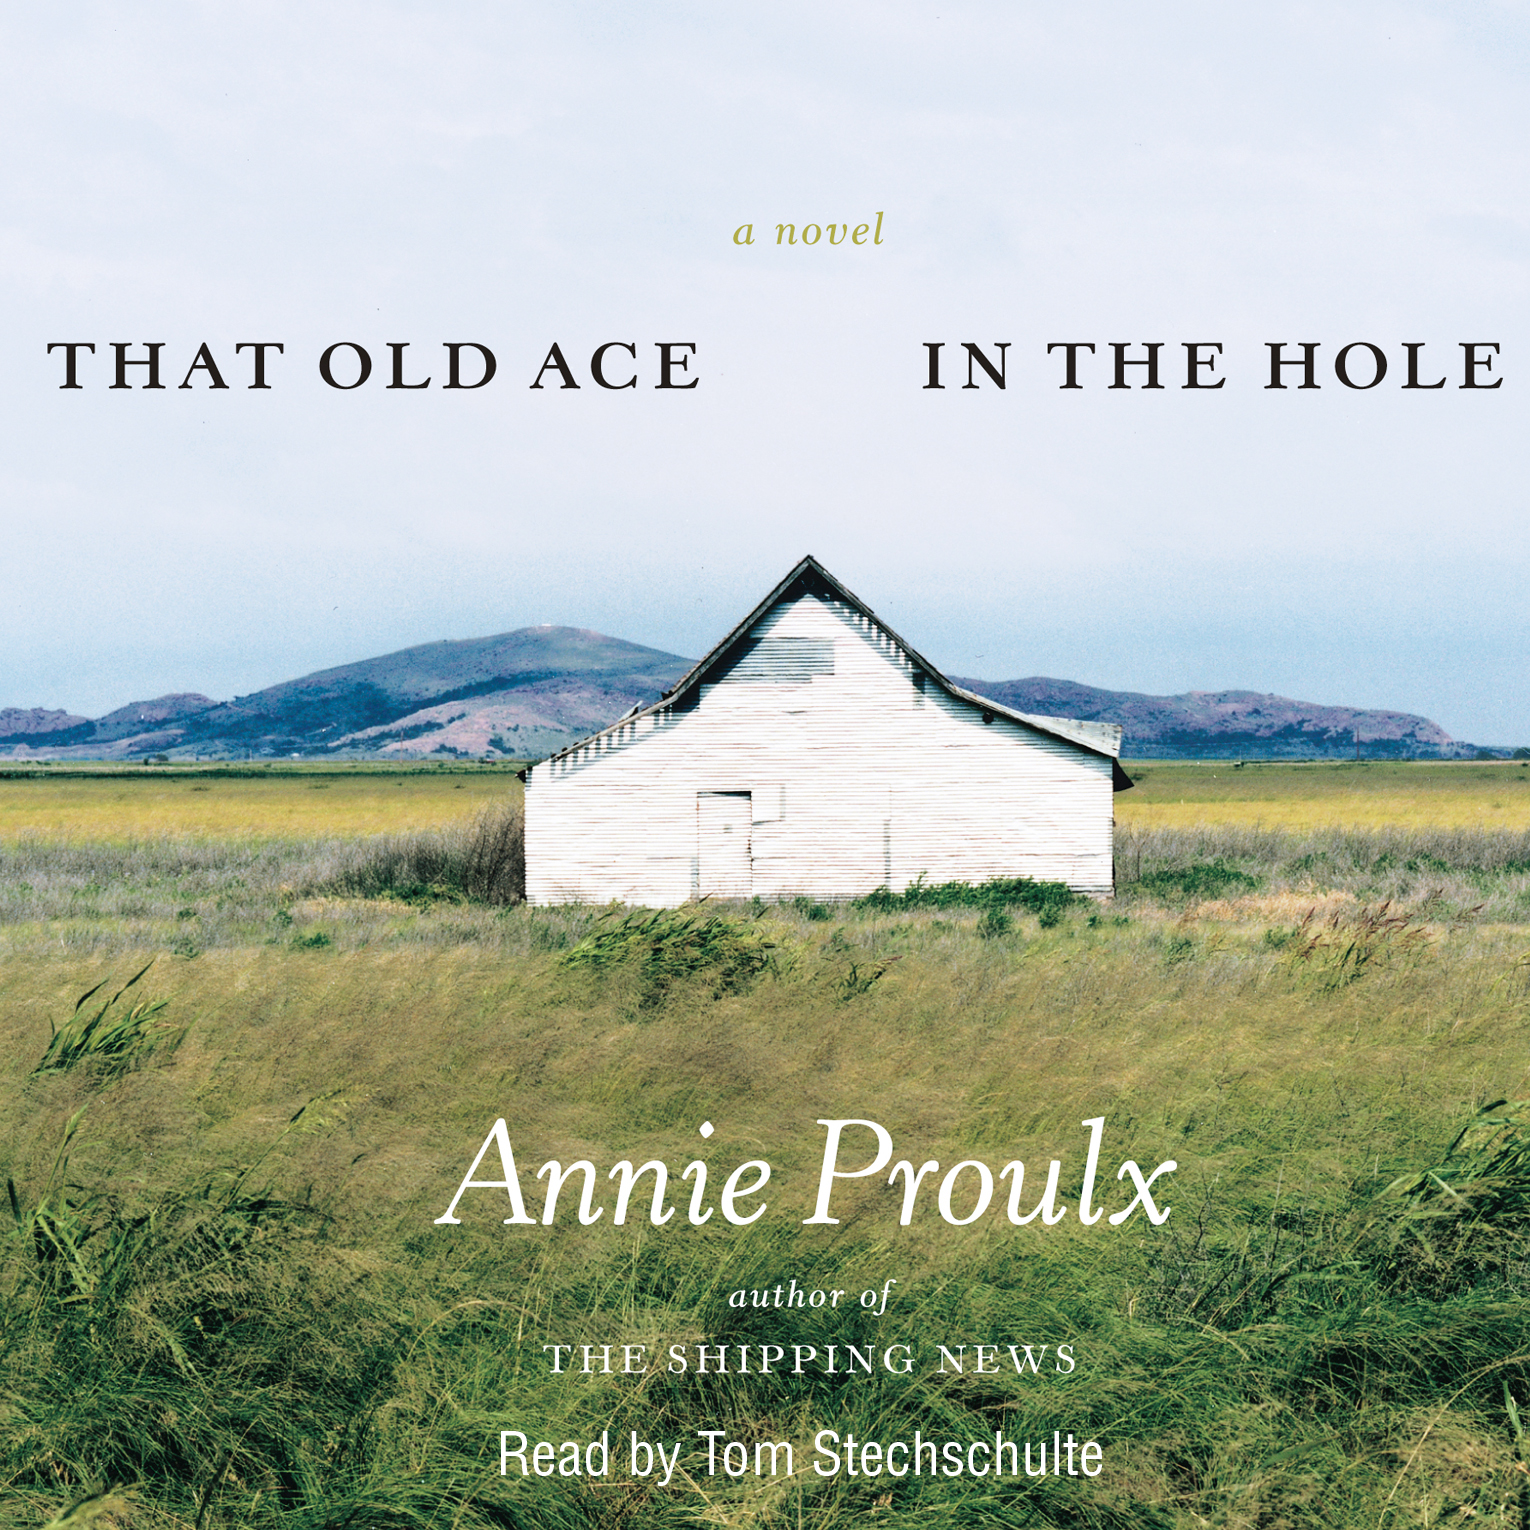 ace in the hole adult